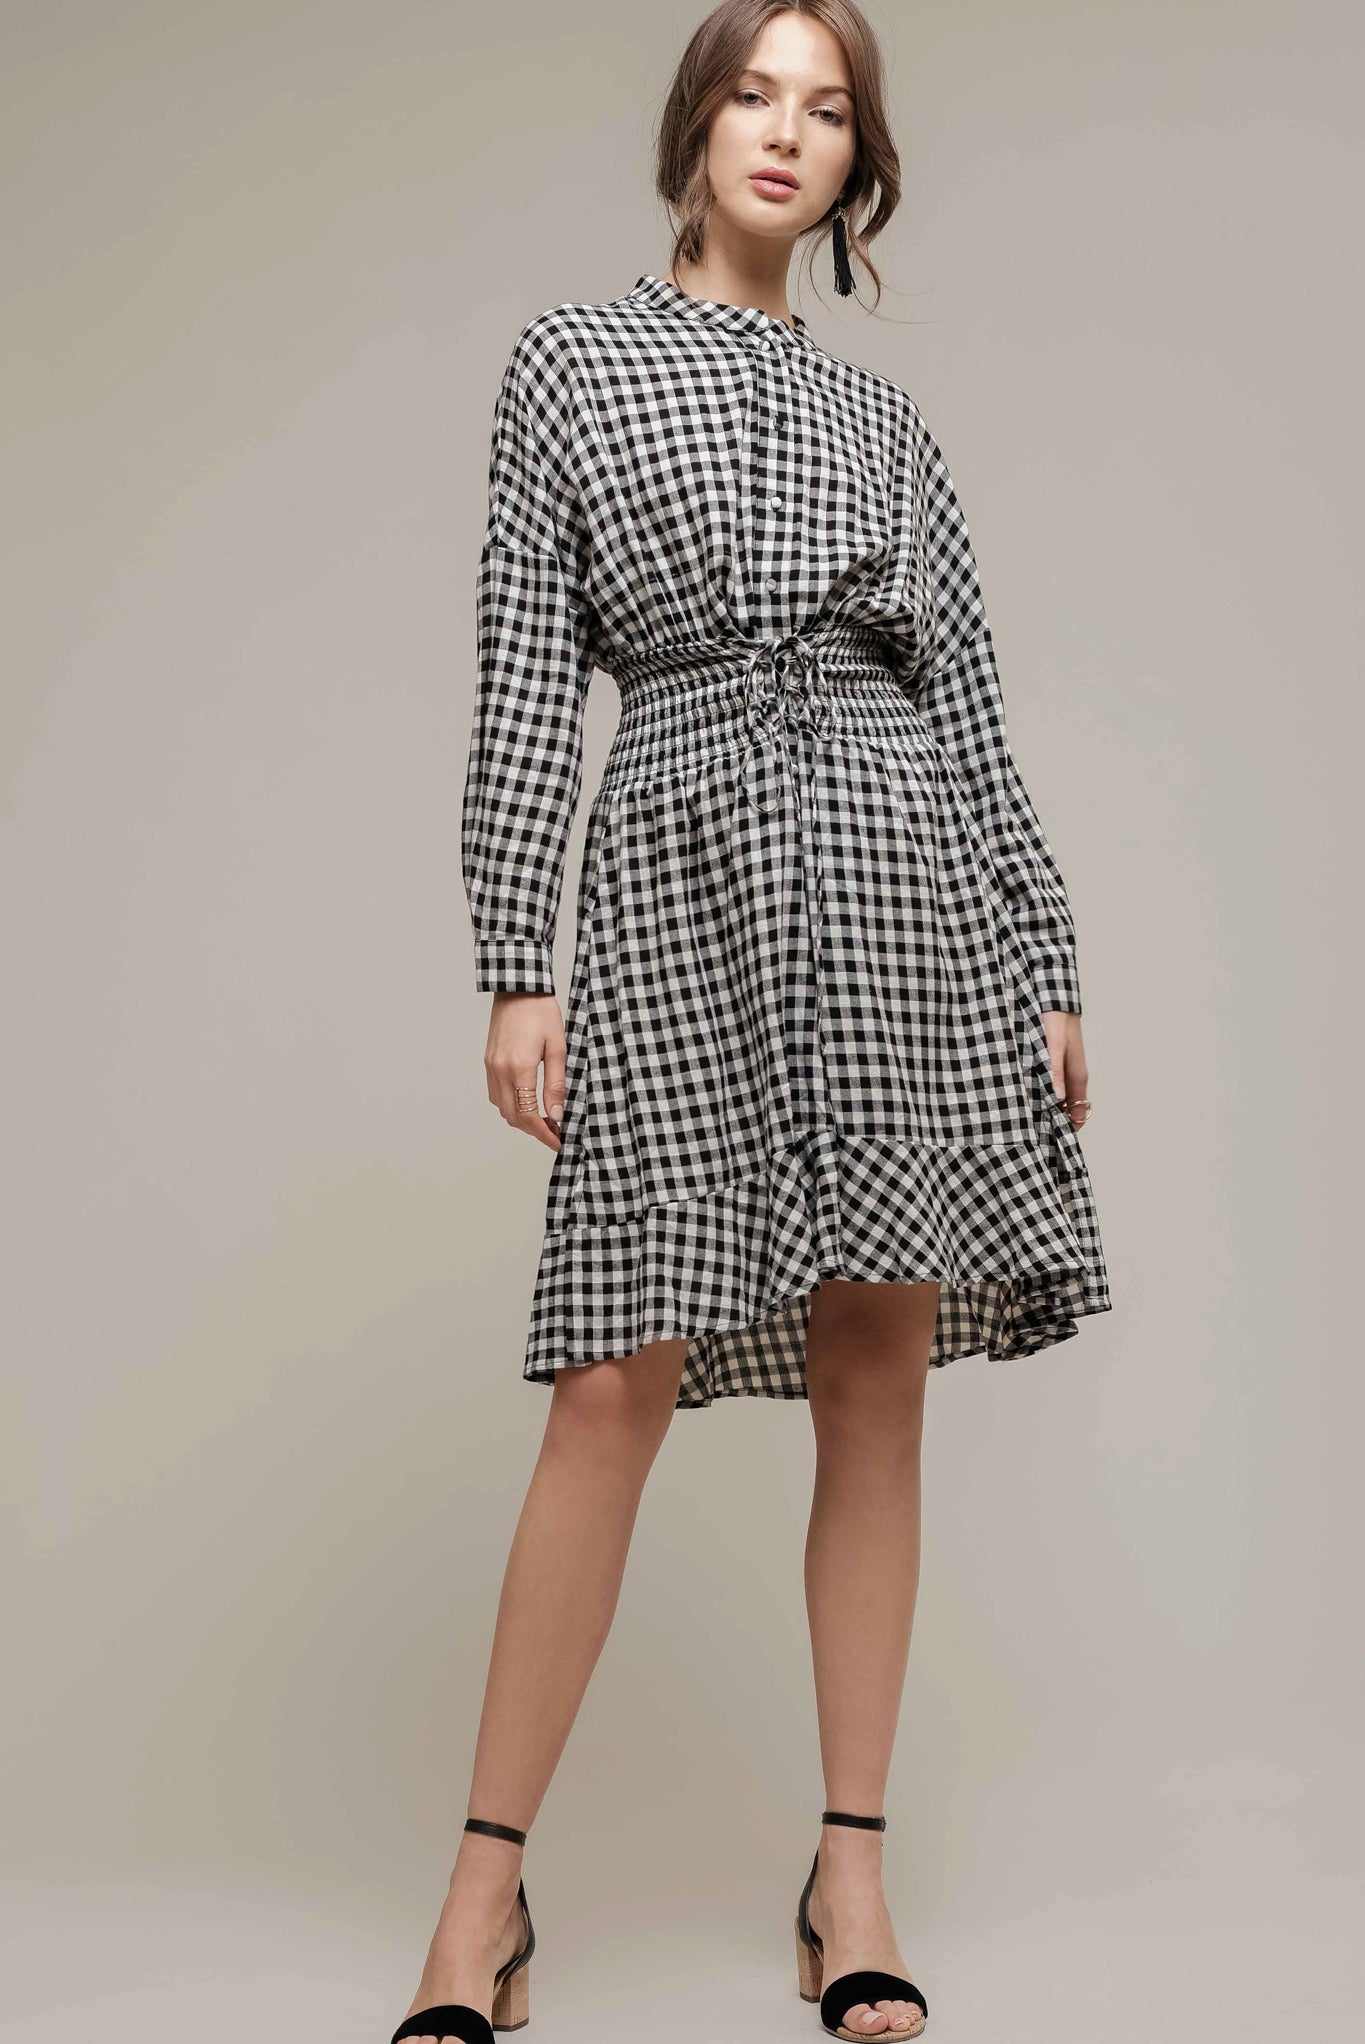 NOTCHED COLLAR DRESS WITH FRILLS